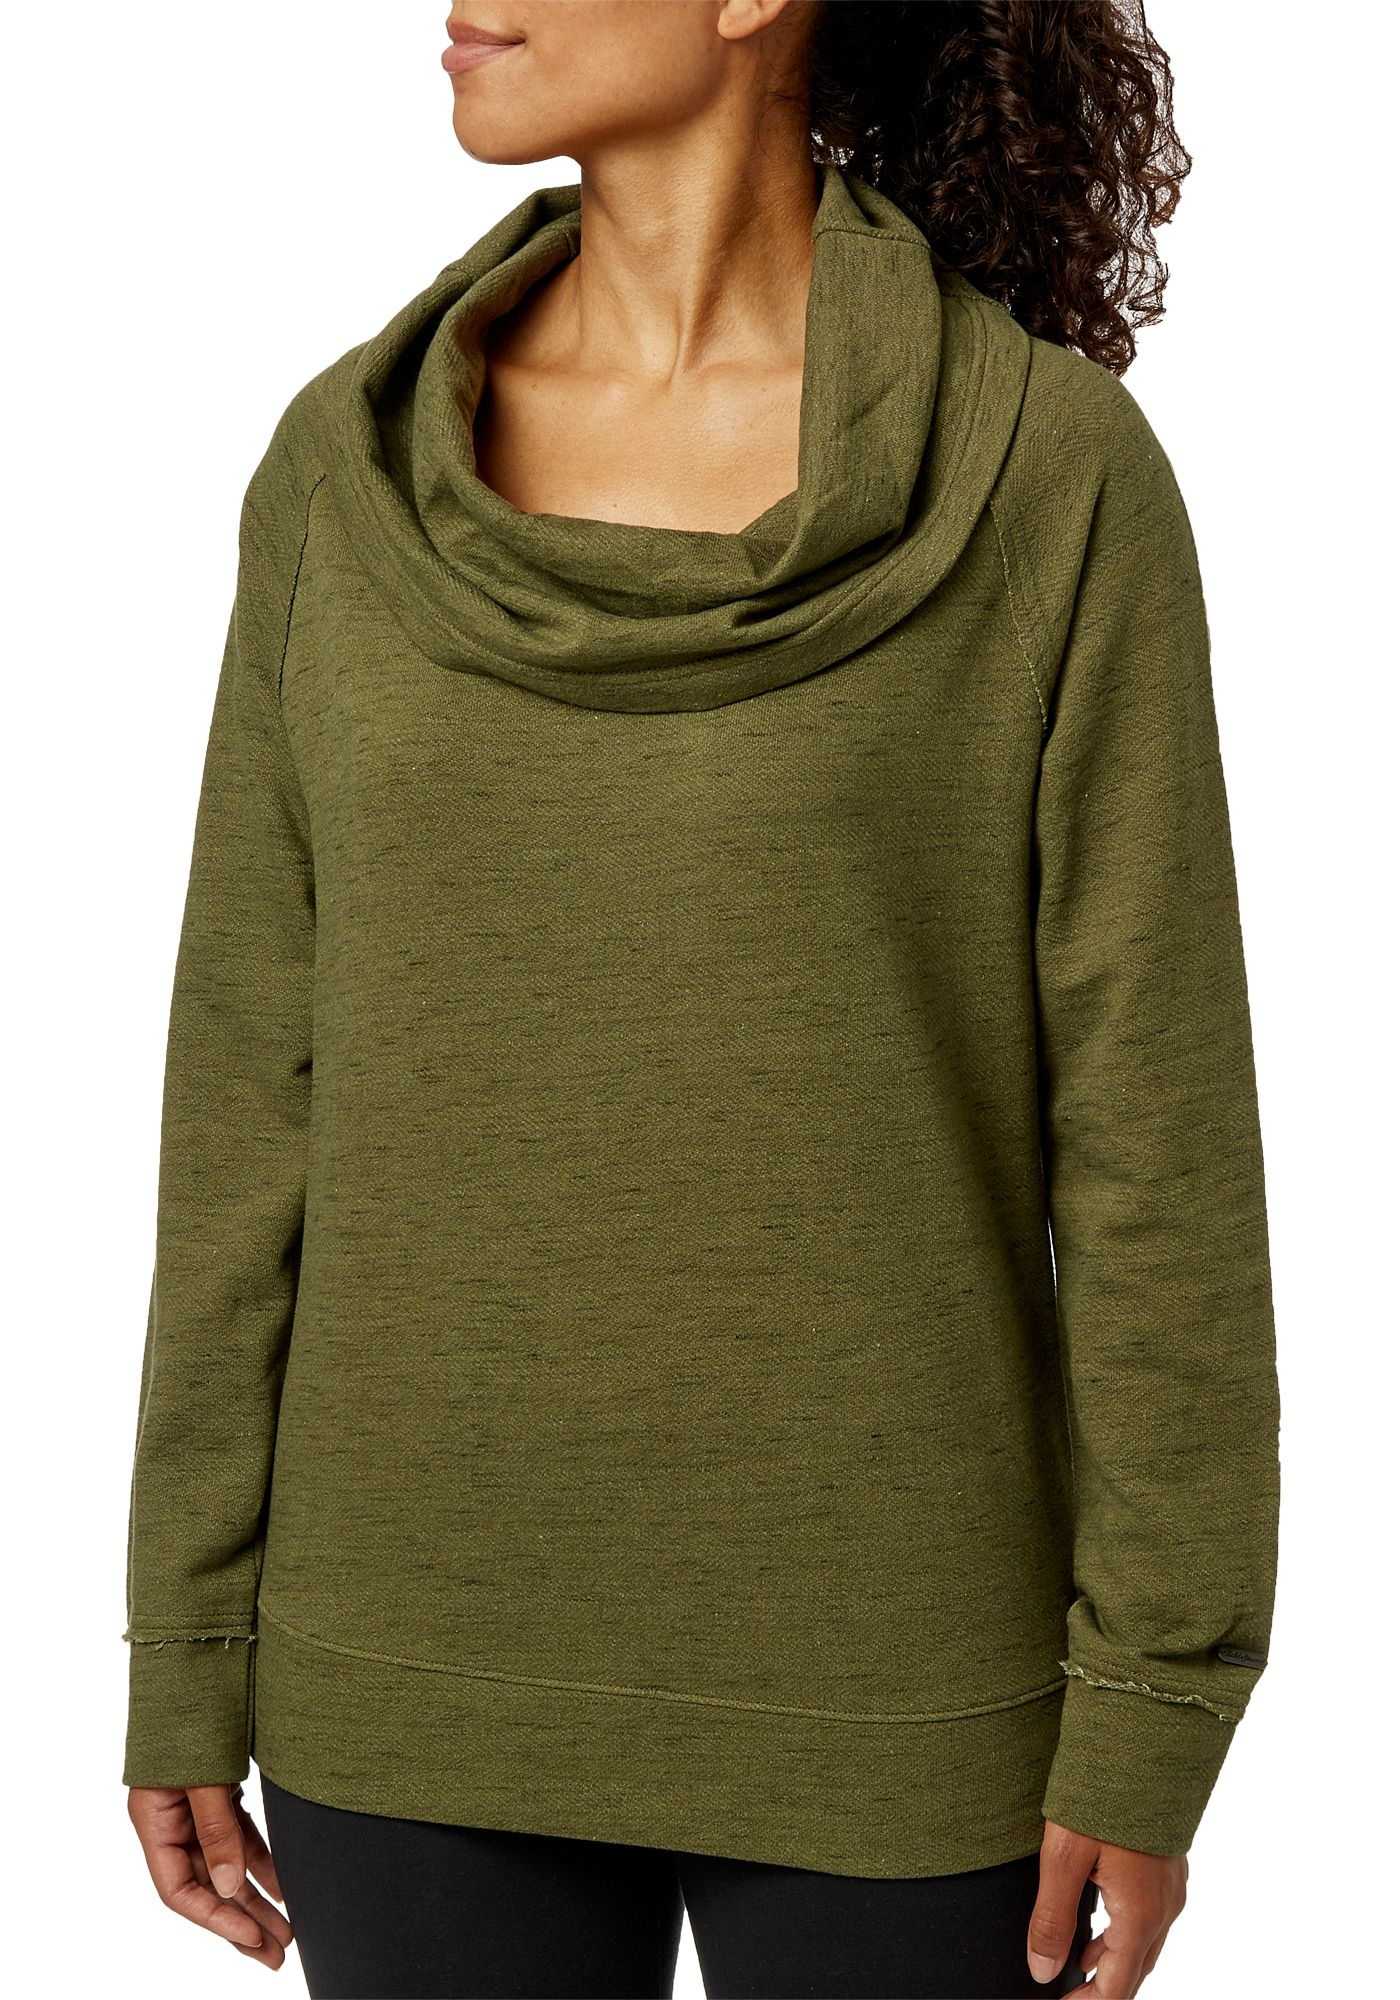 Field & Stream Women's French Terry Cowl Neck Pullover Shirt